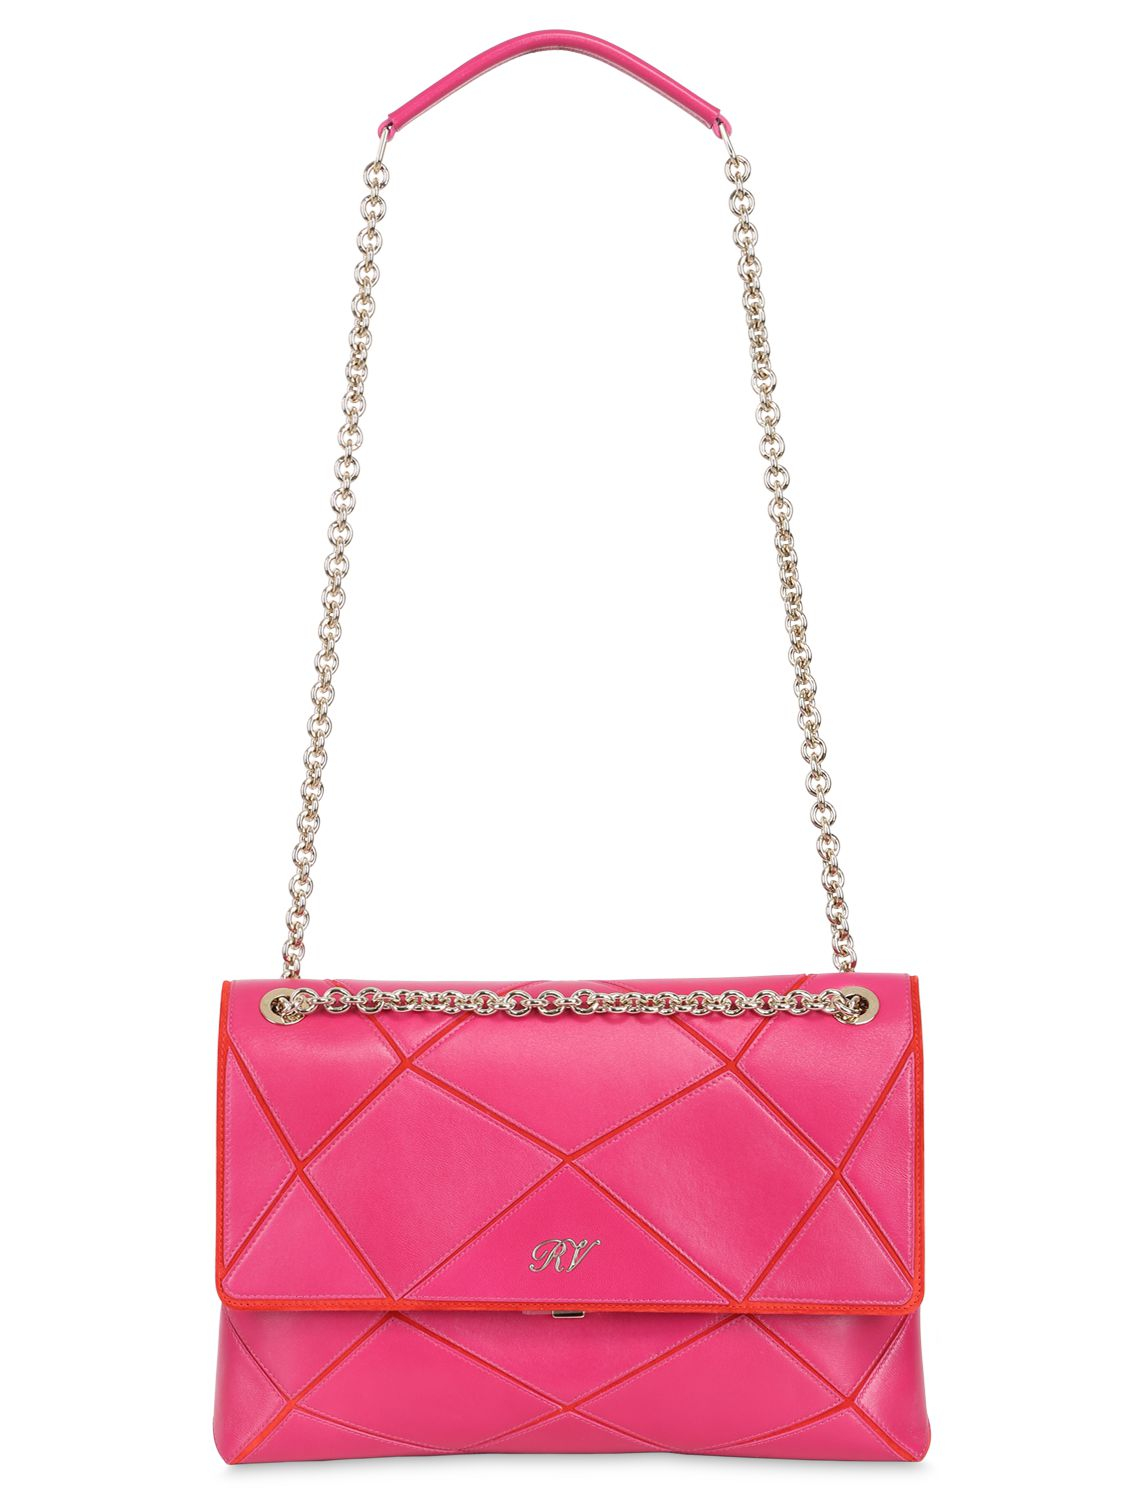 9b0aaa67d91d Roger Vivier Small Prismick Patchwork Leather Bag in Pink - Lyst